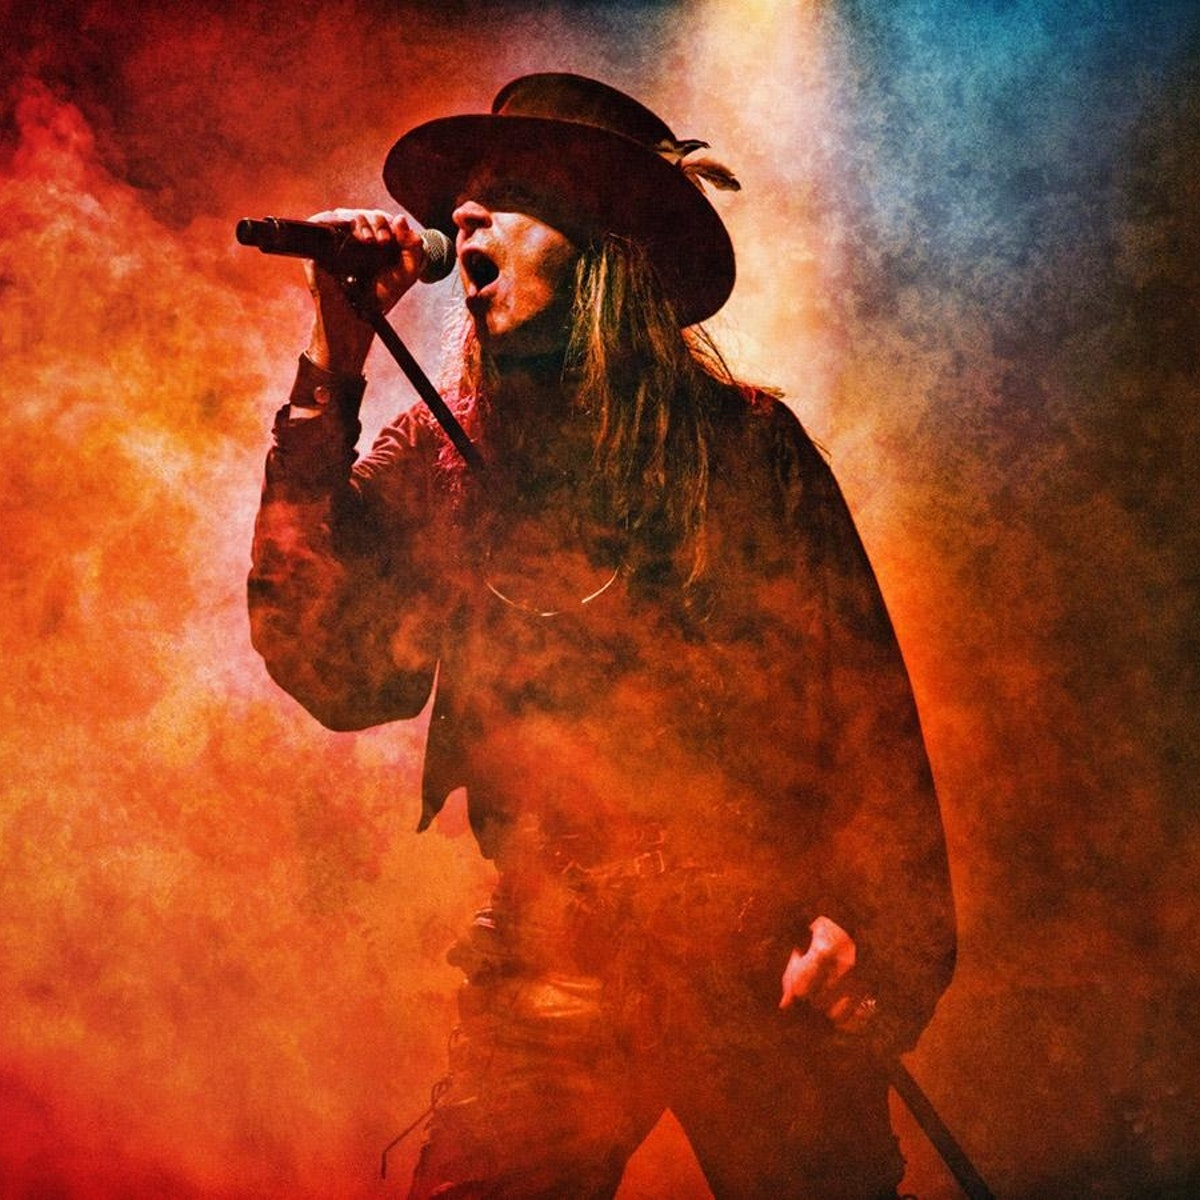 Fields Of The Nephilim Tour Dates & Tickets | Ents24